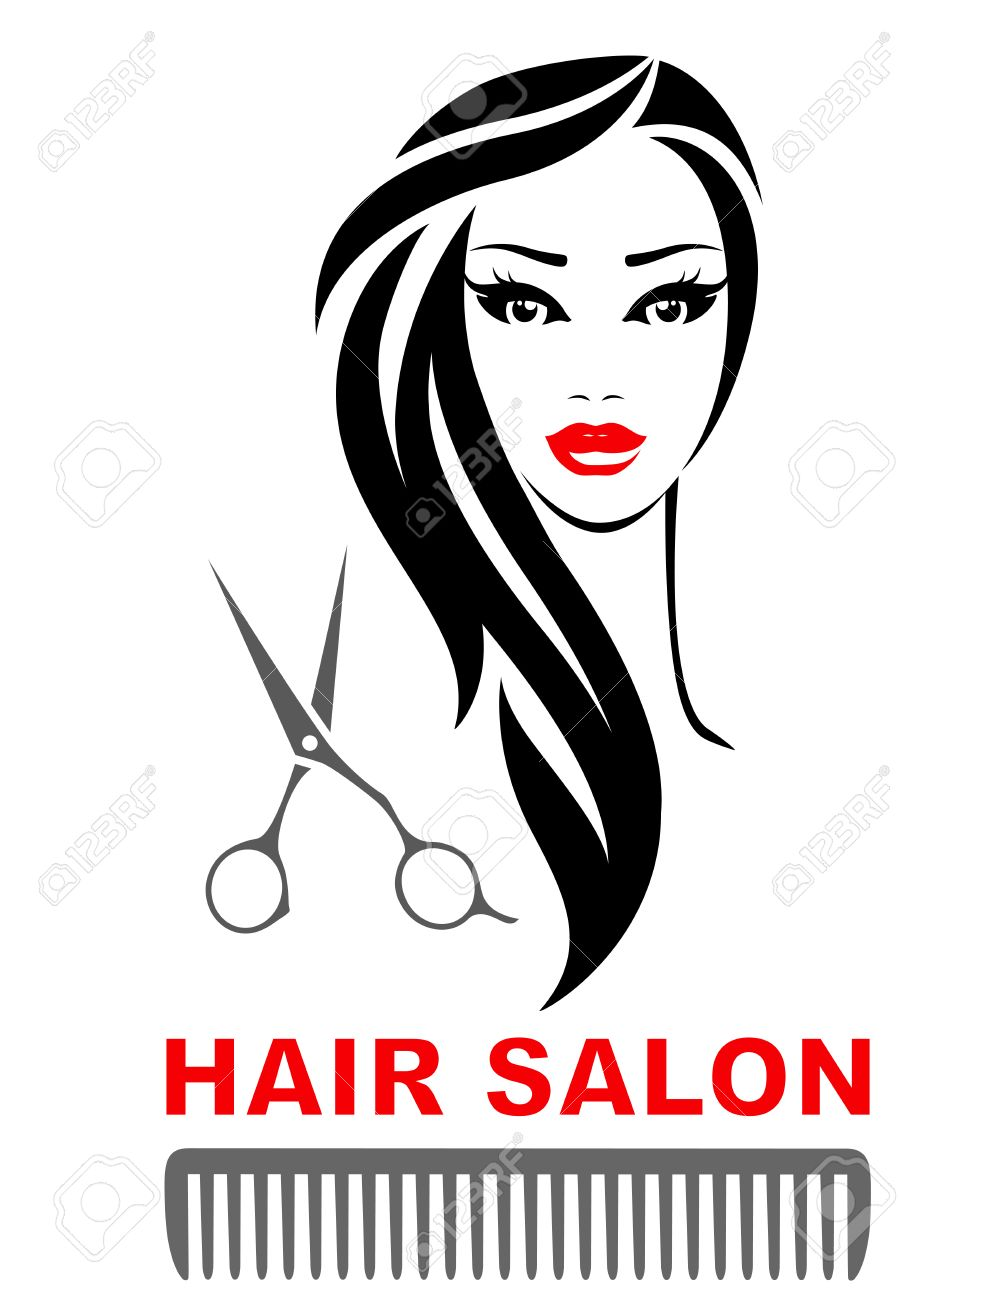 hair salon icon with woman face, scissors and comb silhouette - 51544346